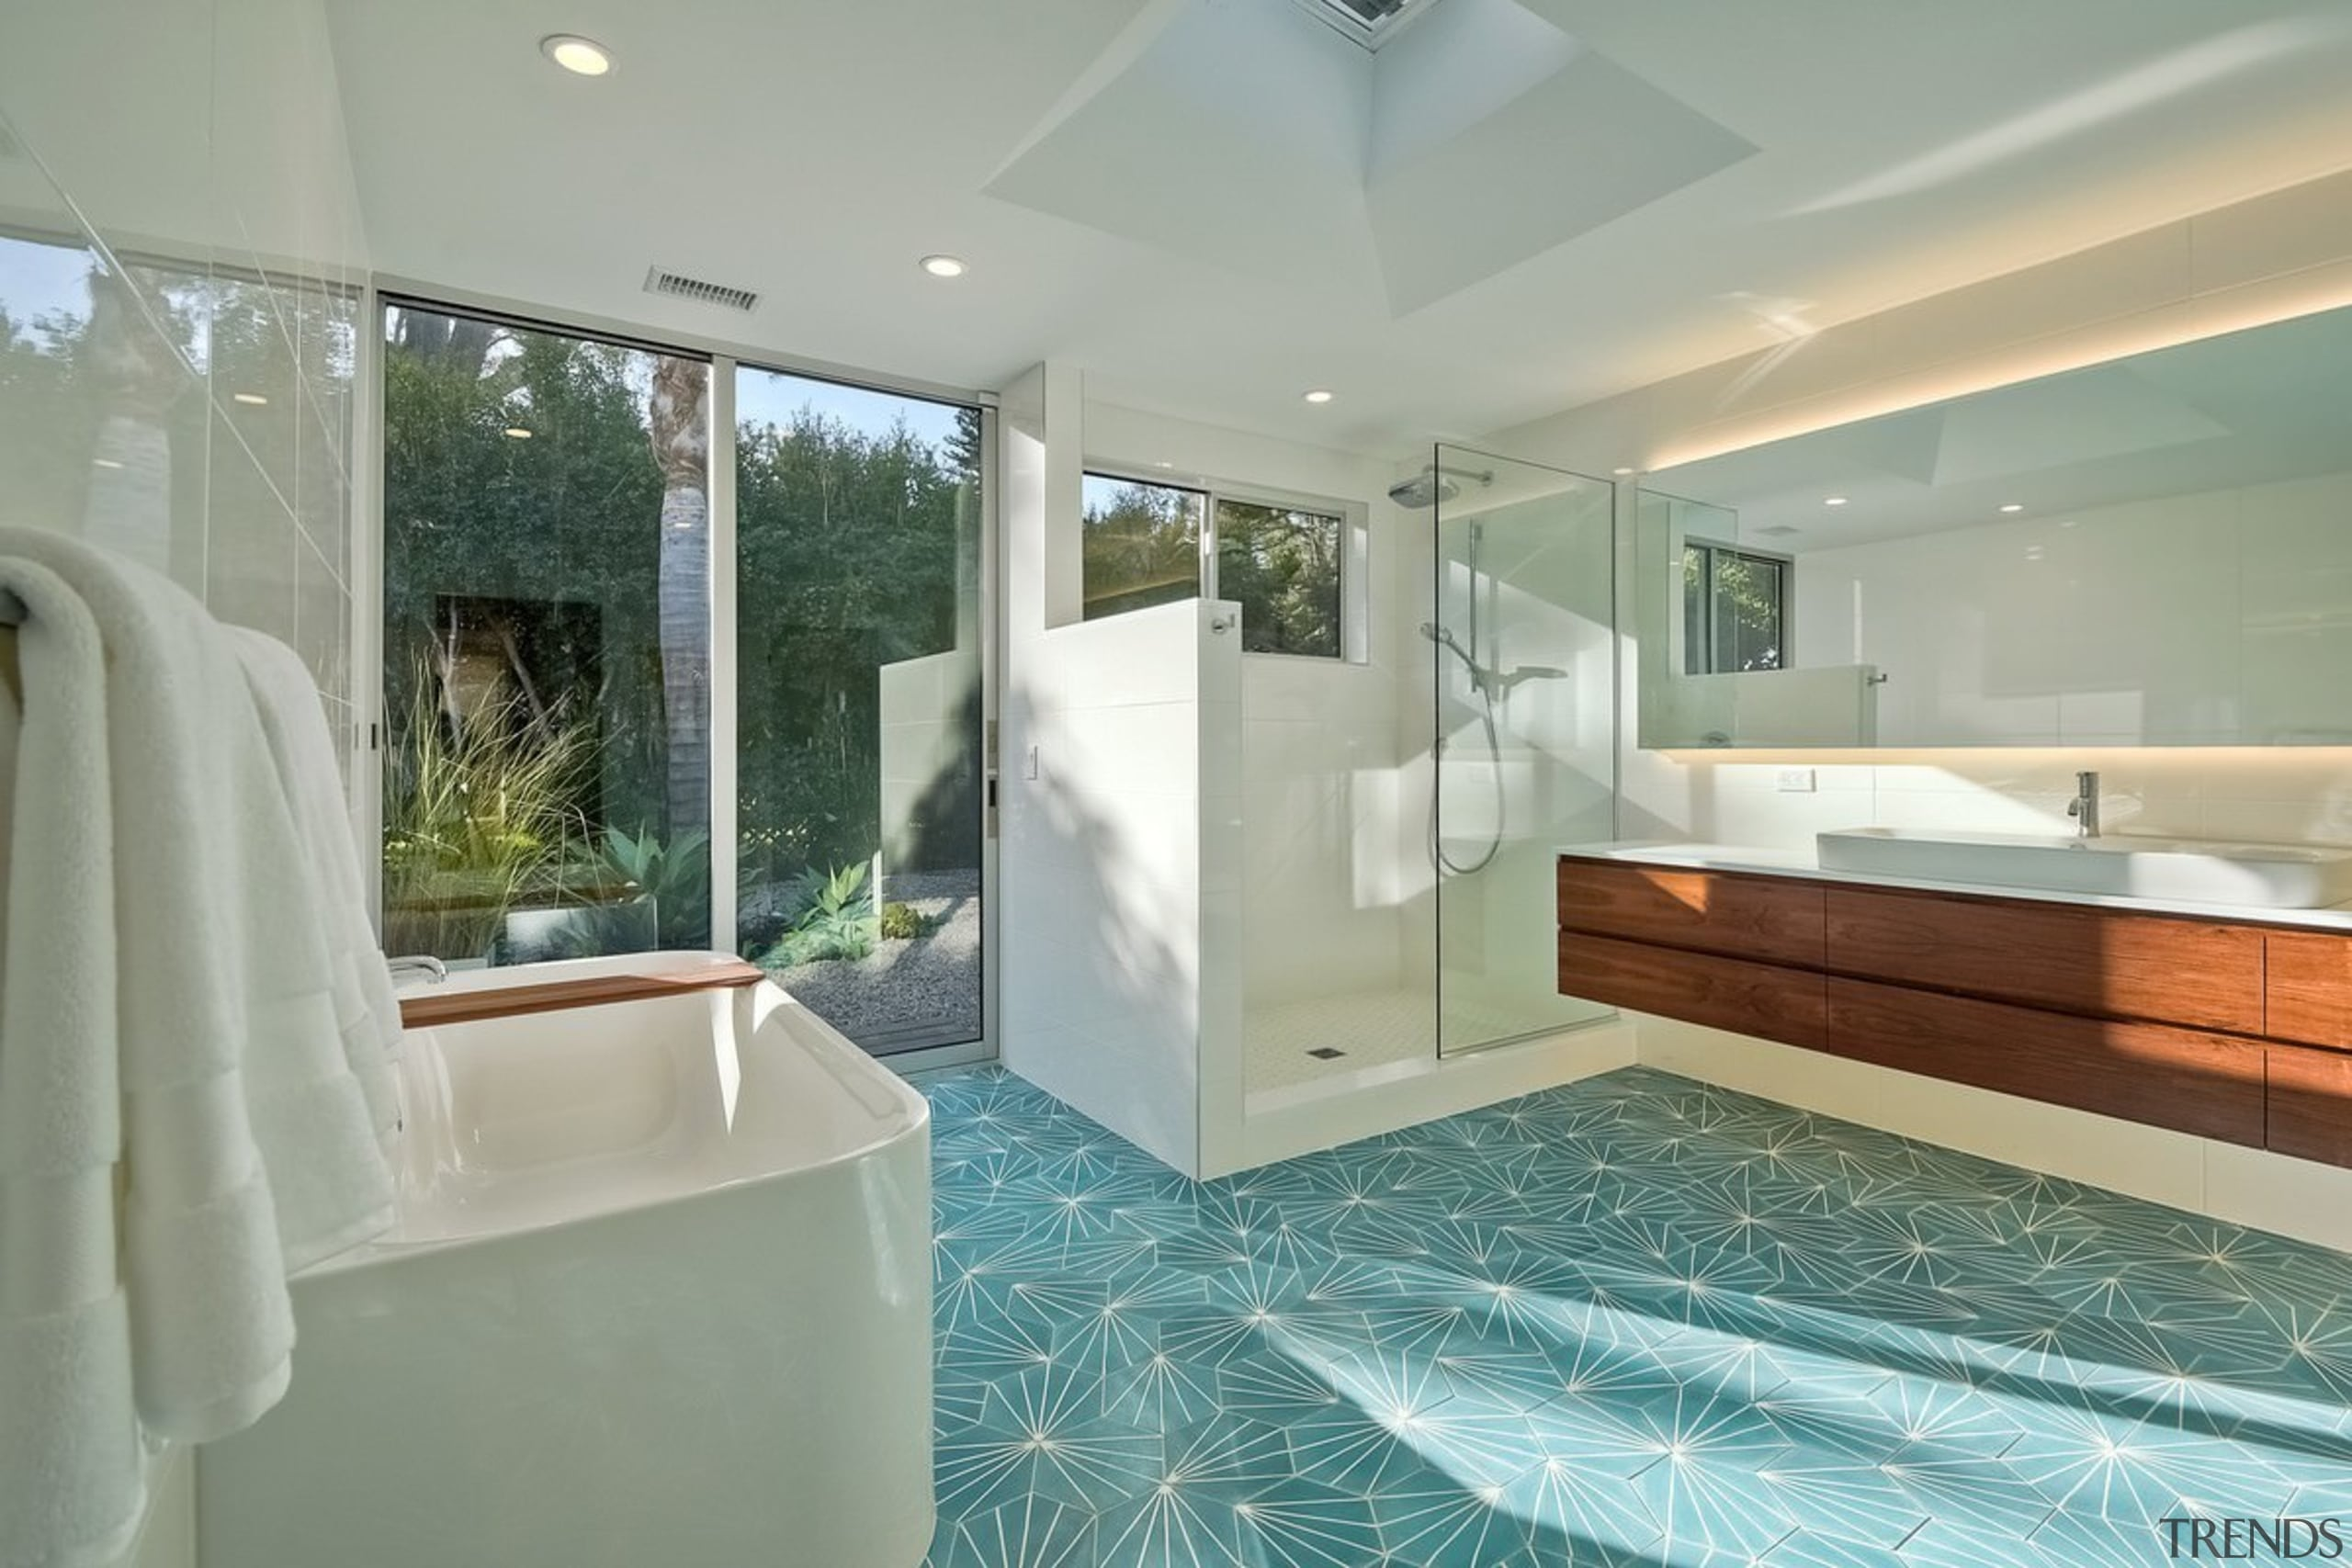 Architect: lloyd russell, aiaPhotography by Darren Bradley architecture, bathroom, bathtub, ceiling, estate, floor, home, interior design, property, real estate, room, window, gray